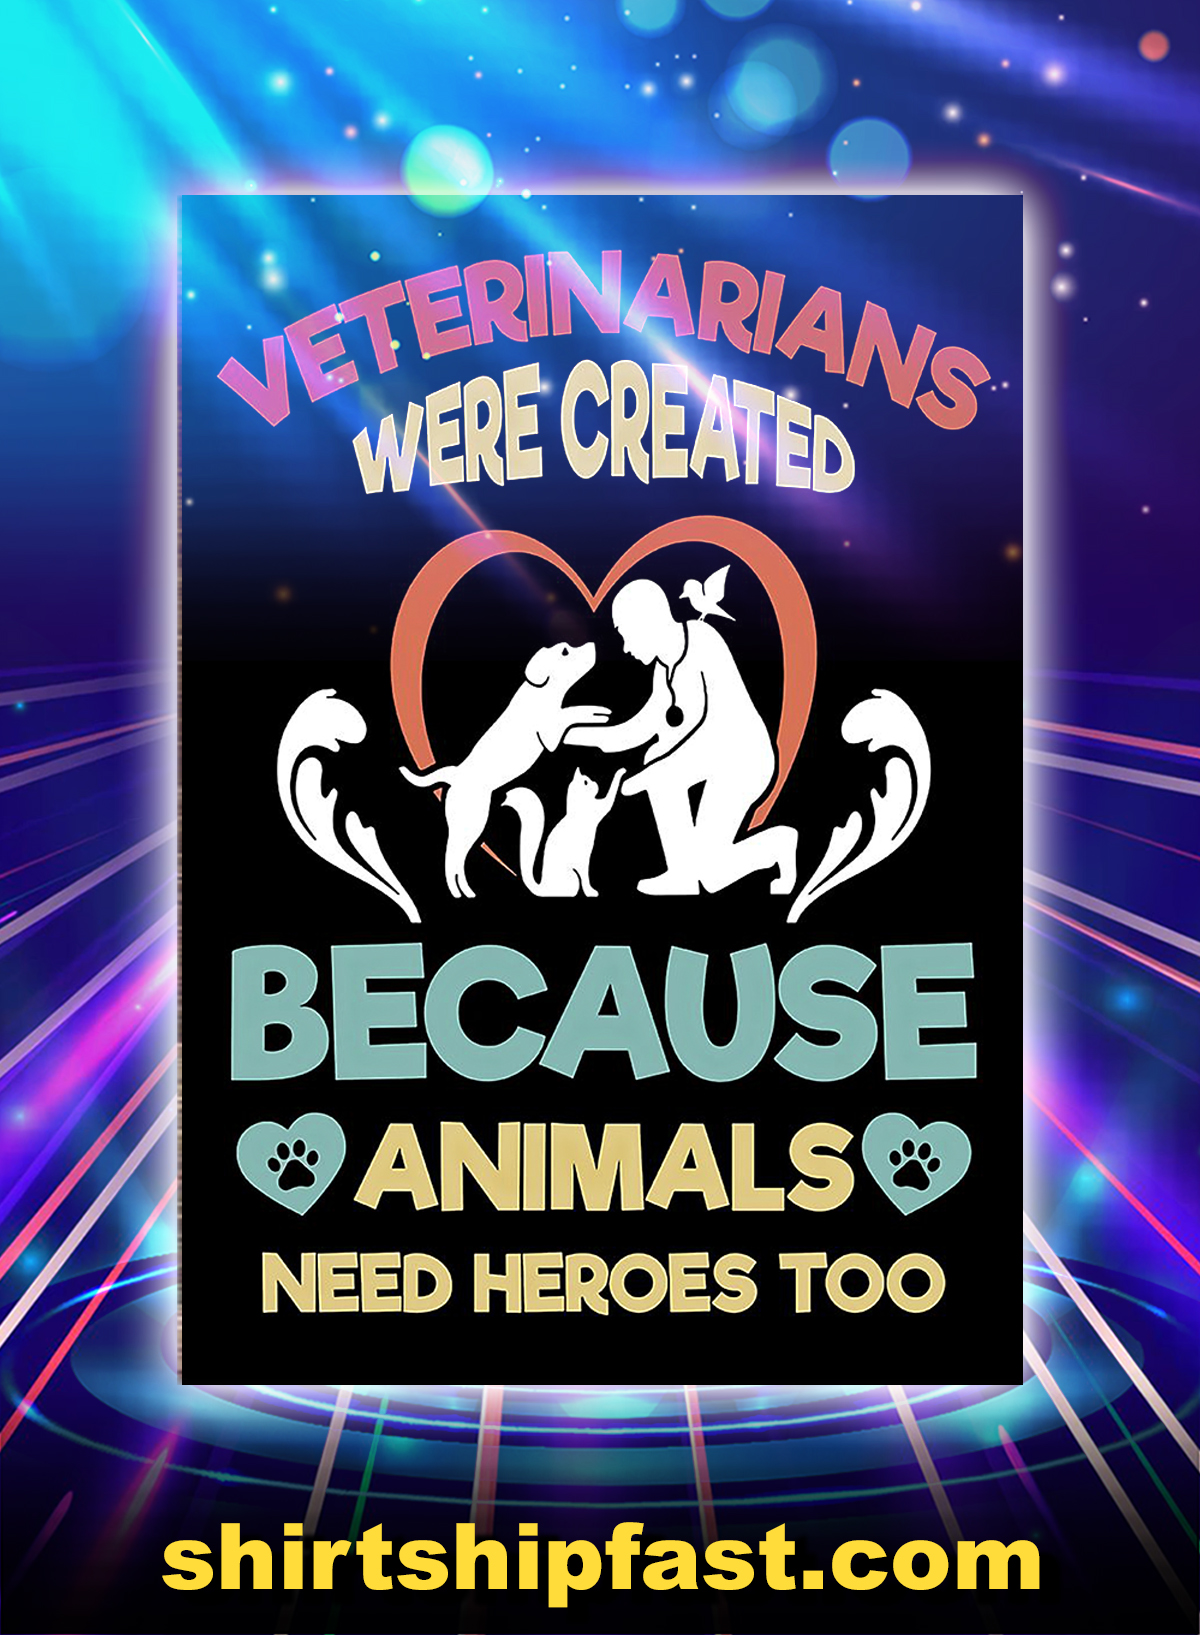 Veterinarians were created because animals need heroes too poster - A4